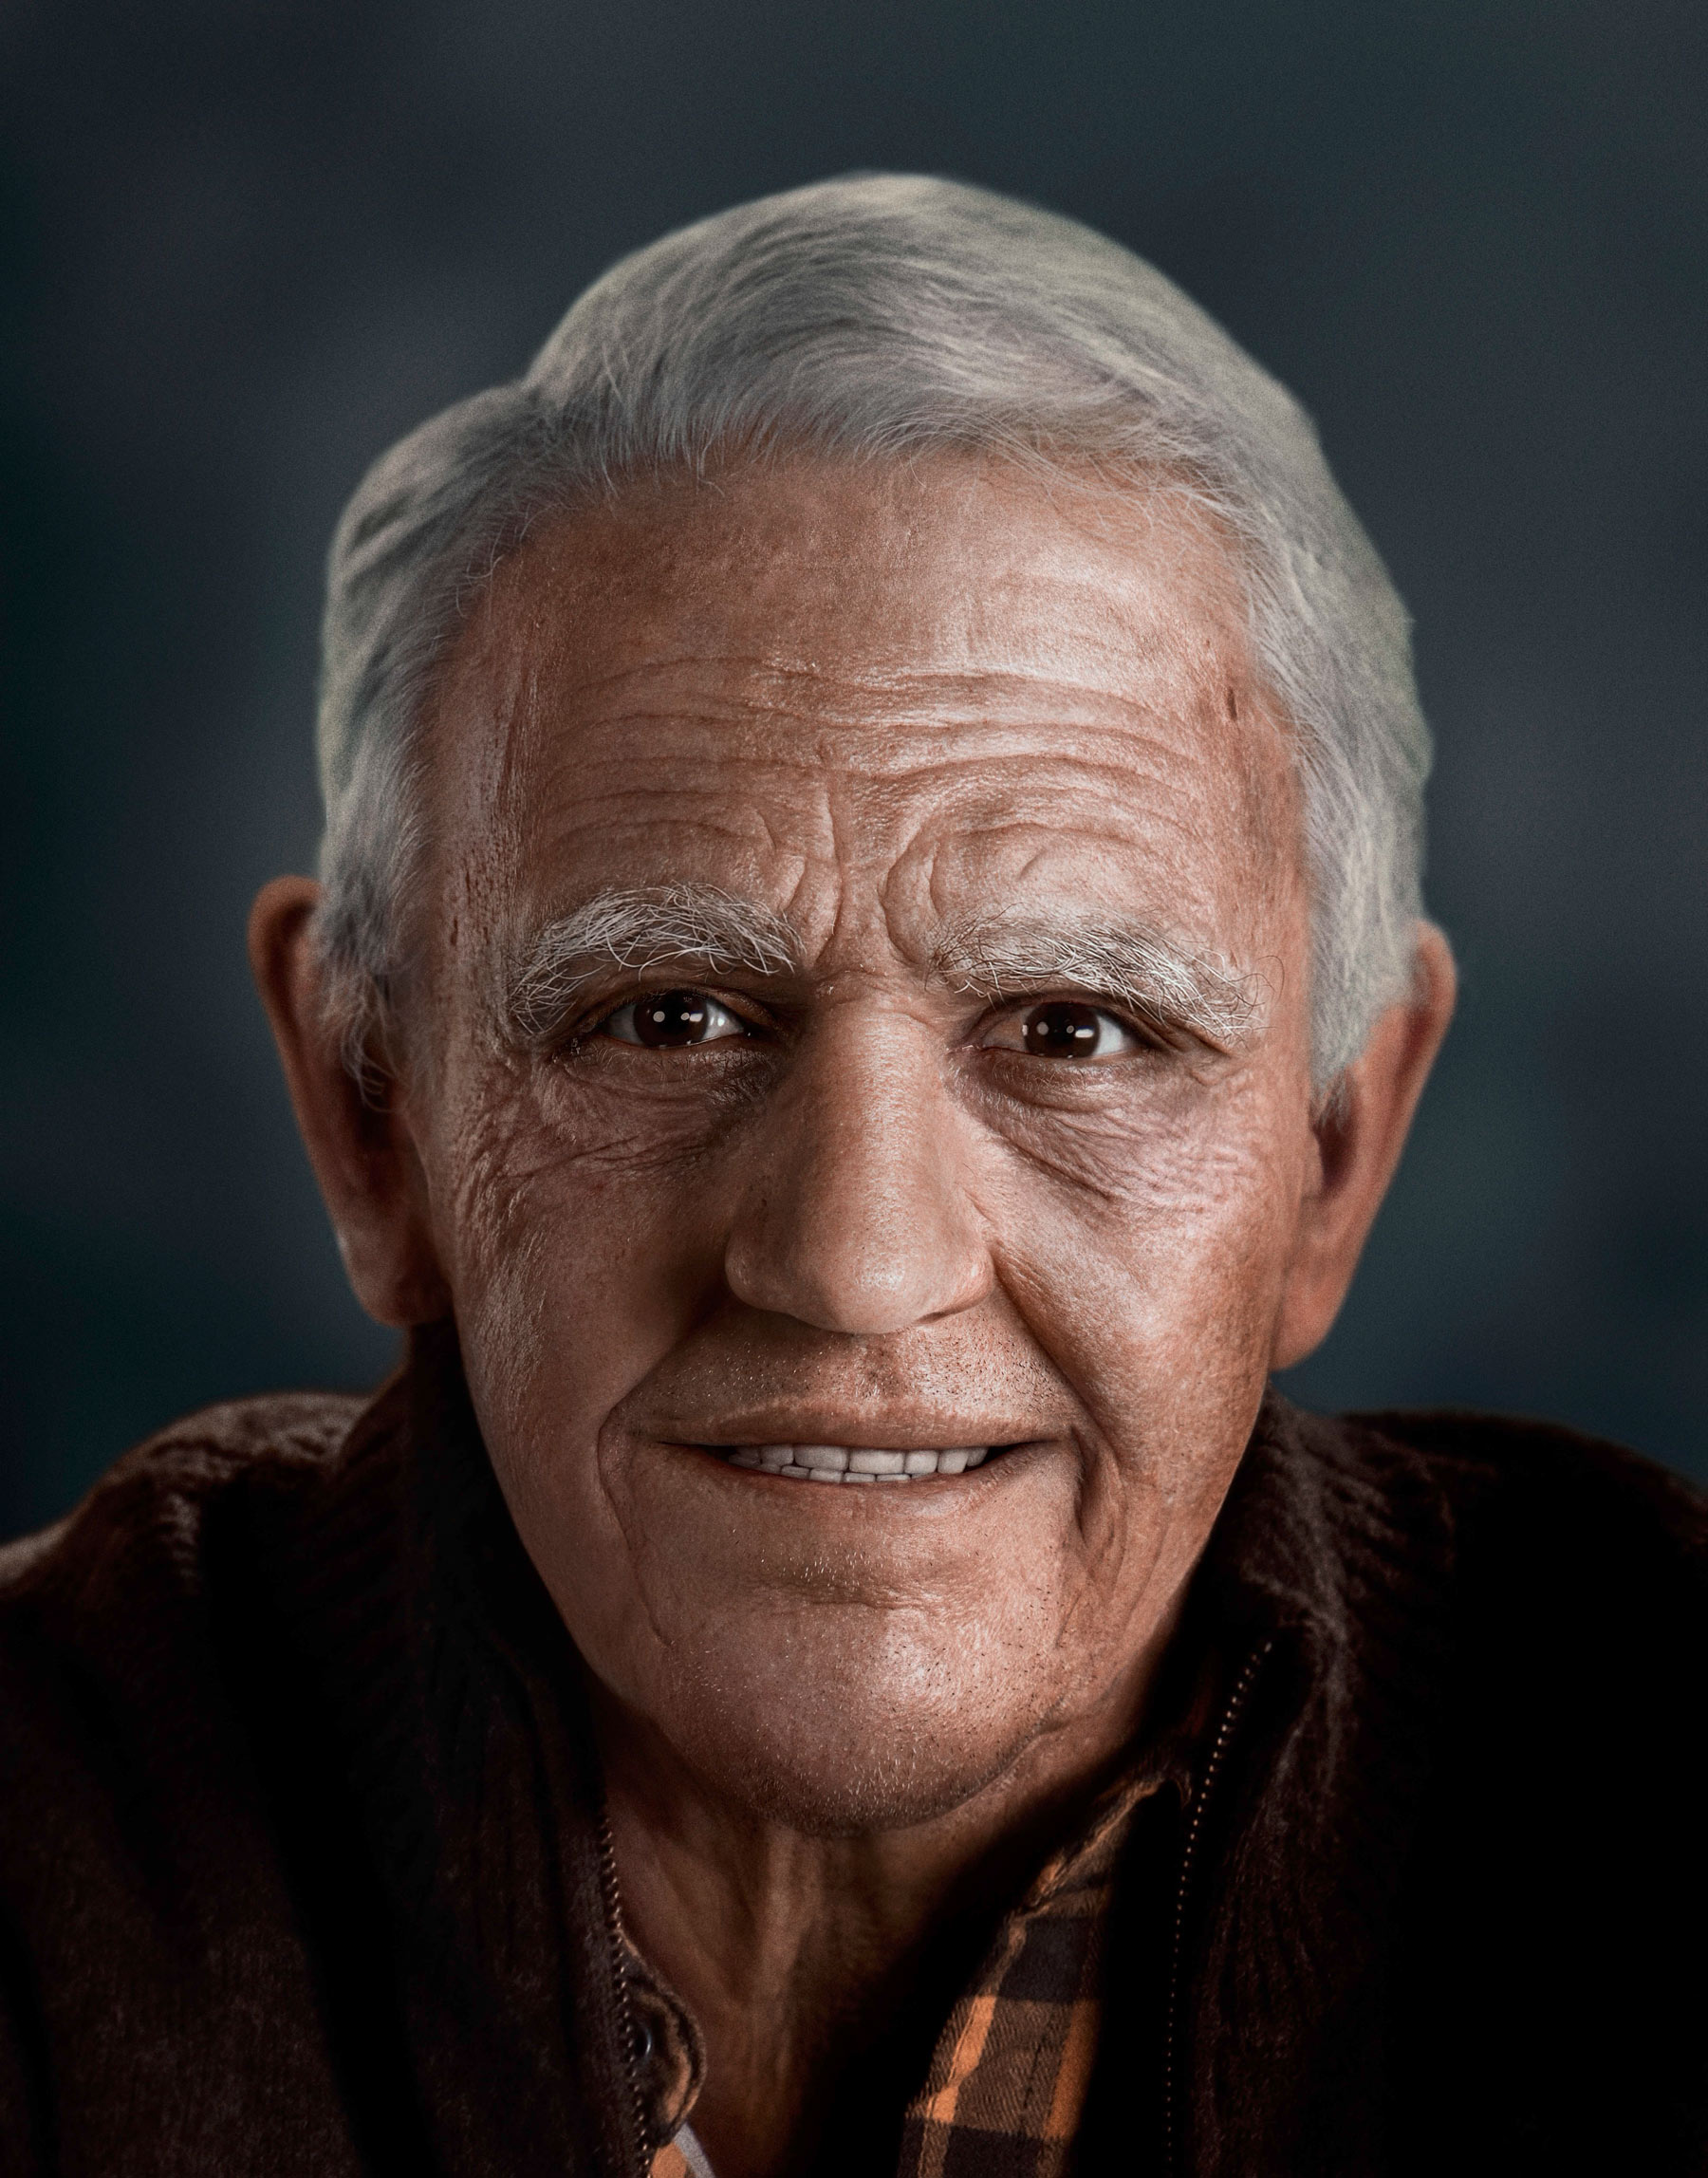 Good Boy Wolf Photographer, filmic portrait, Alexis Sanchez as a old man